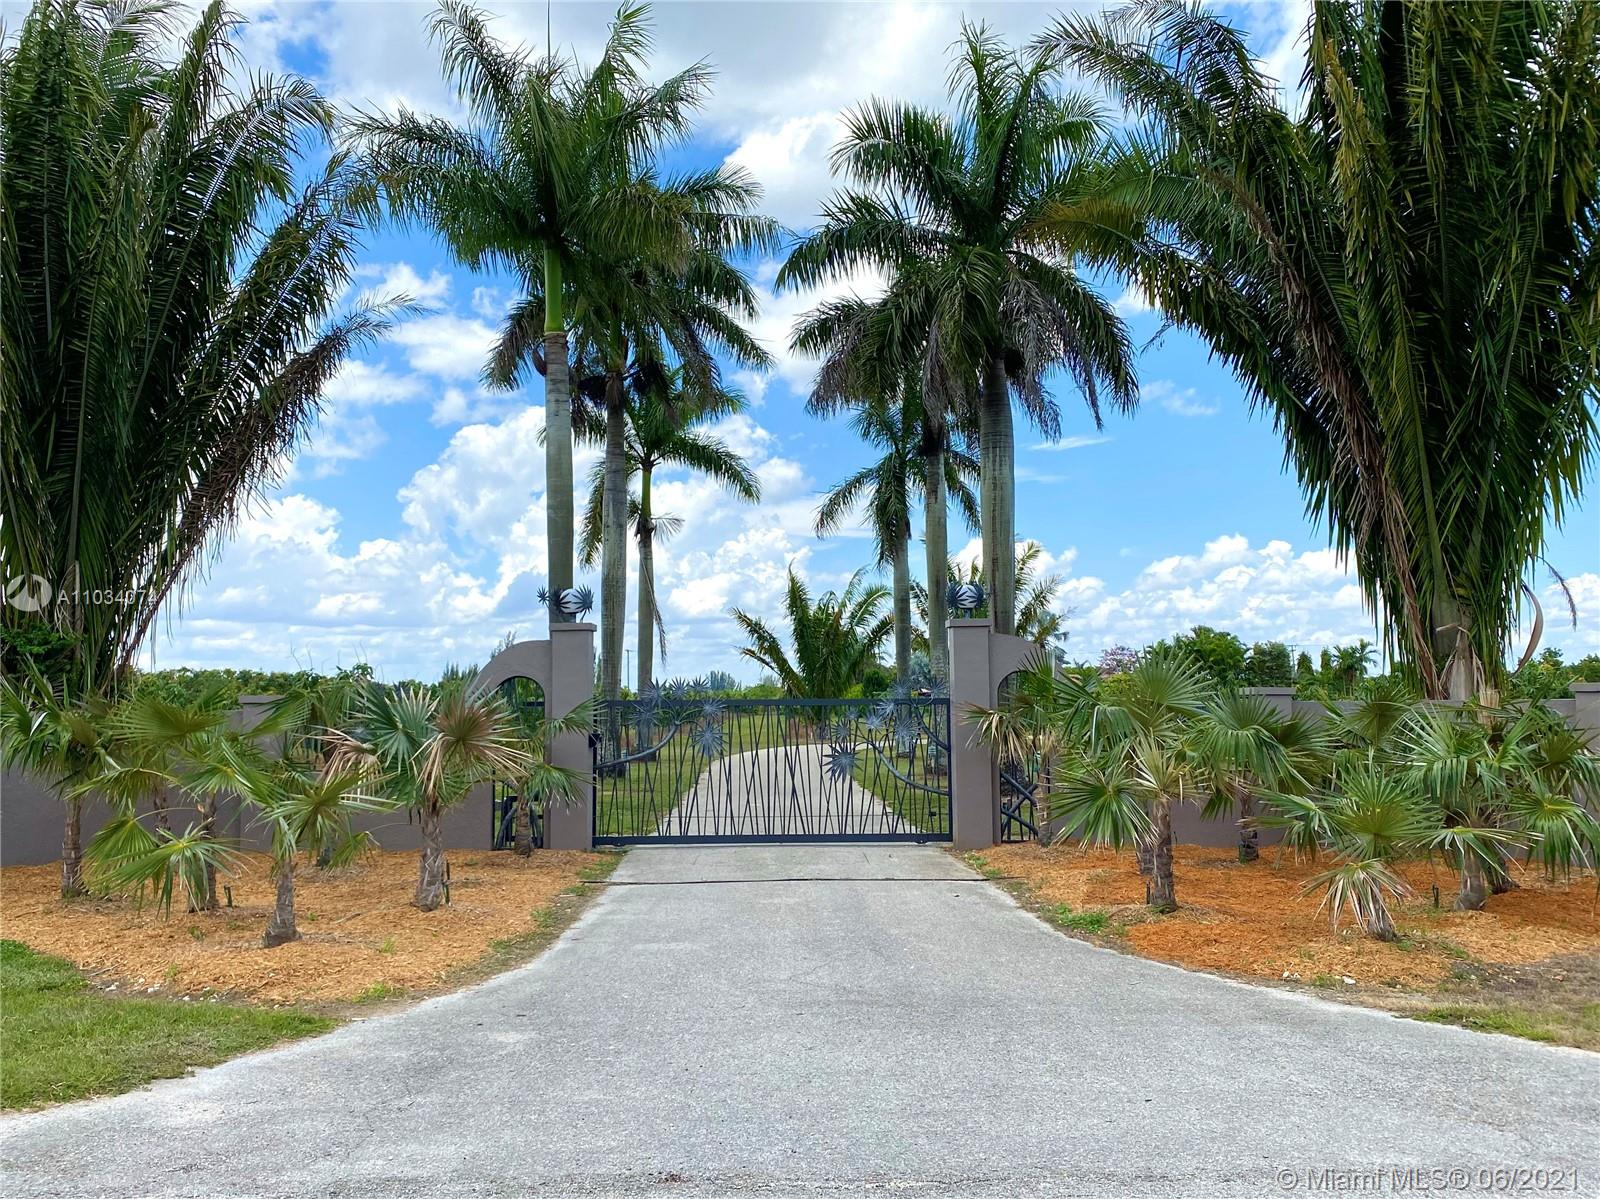 Beautiful Estate property with tropical fruit groves in Redland agricultural area of Miami. 9.03 acres fronting onto SW 280 St (Waldin Dr) west of SW 182 Av (Roberts Rd). Spectacularly finished 3/3.5 residence. Move-in condition. Newly upgraded bathrooms, gourmet kitchen, library/office, exercise room, utility room, 3-car garage, new septic system, new impact windows and doors, large covered patio overlooking lushly landscaped property. 360 mature Longan trees and 281 prized Keitt mango trees with overhead & drip emitter irrigation, pump house with diesel pump & 4 wells. Diesel backup power generator. Fully fenced with electric gate and intercom. AU zoning Flood Zone AH 13' above sea level. Unique income-producing investment opportunity. Minutes to shops, banks, restaurants and Turnpike.